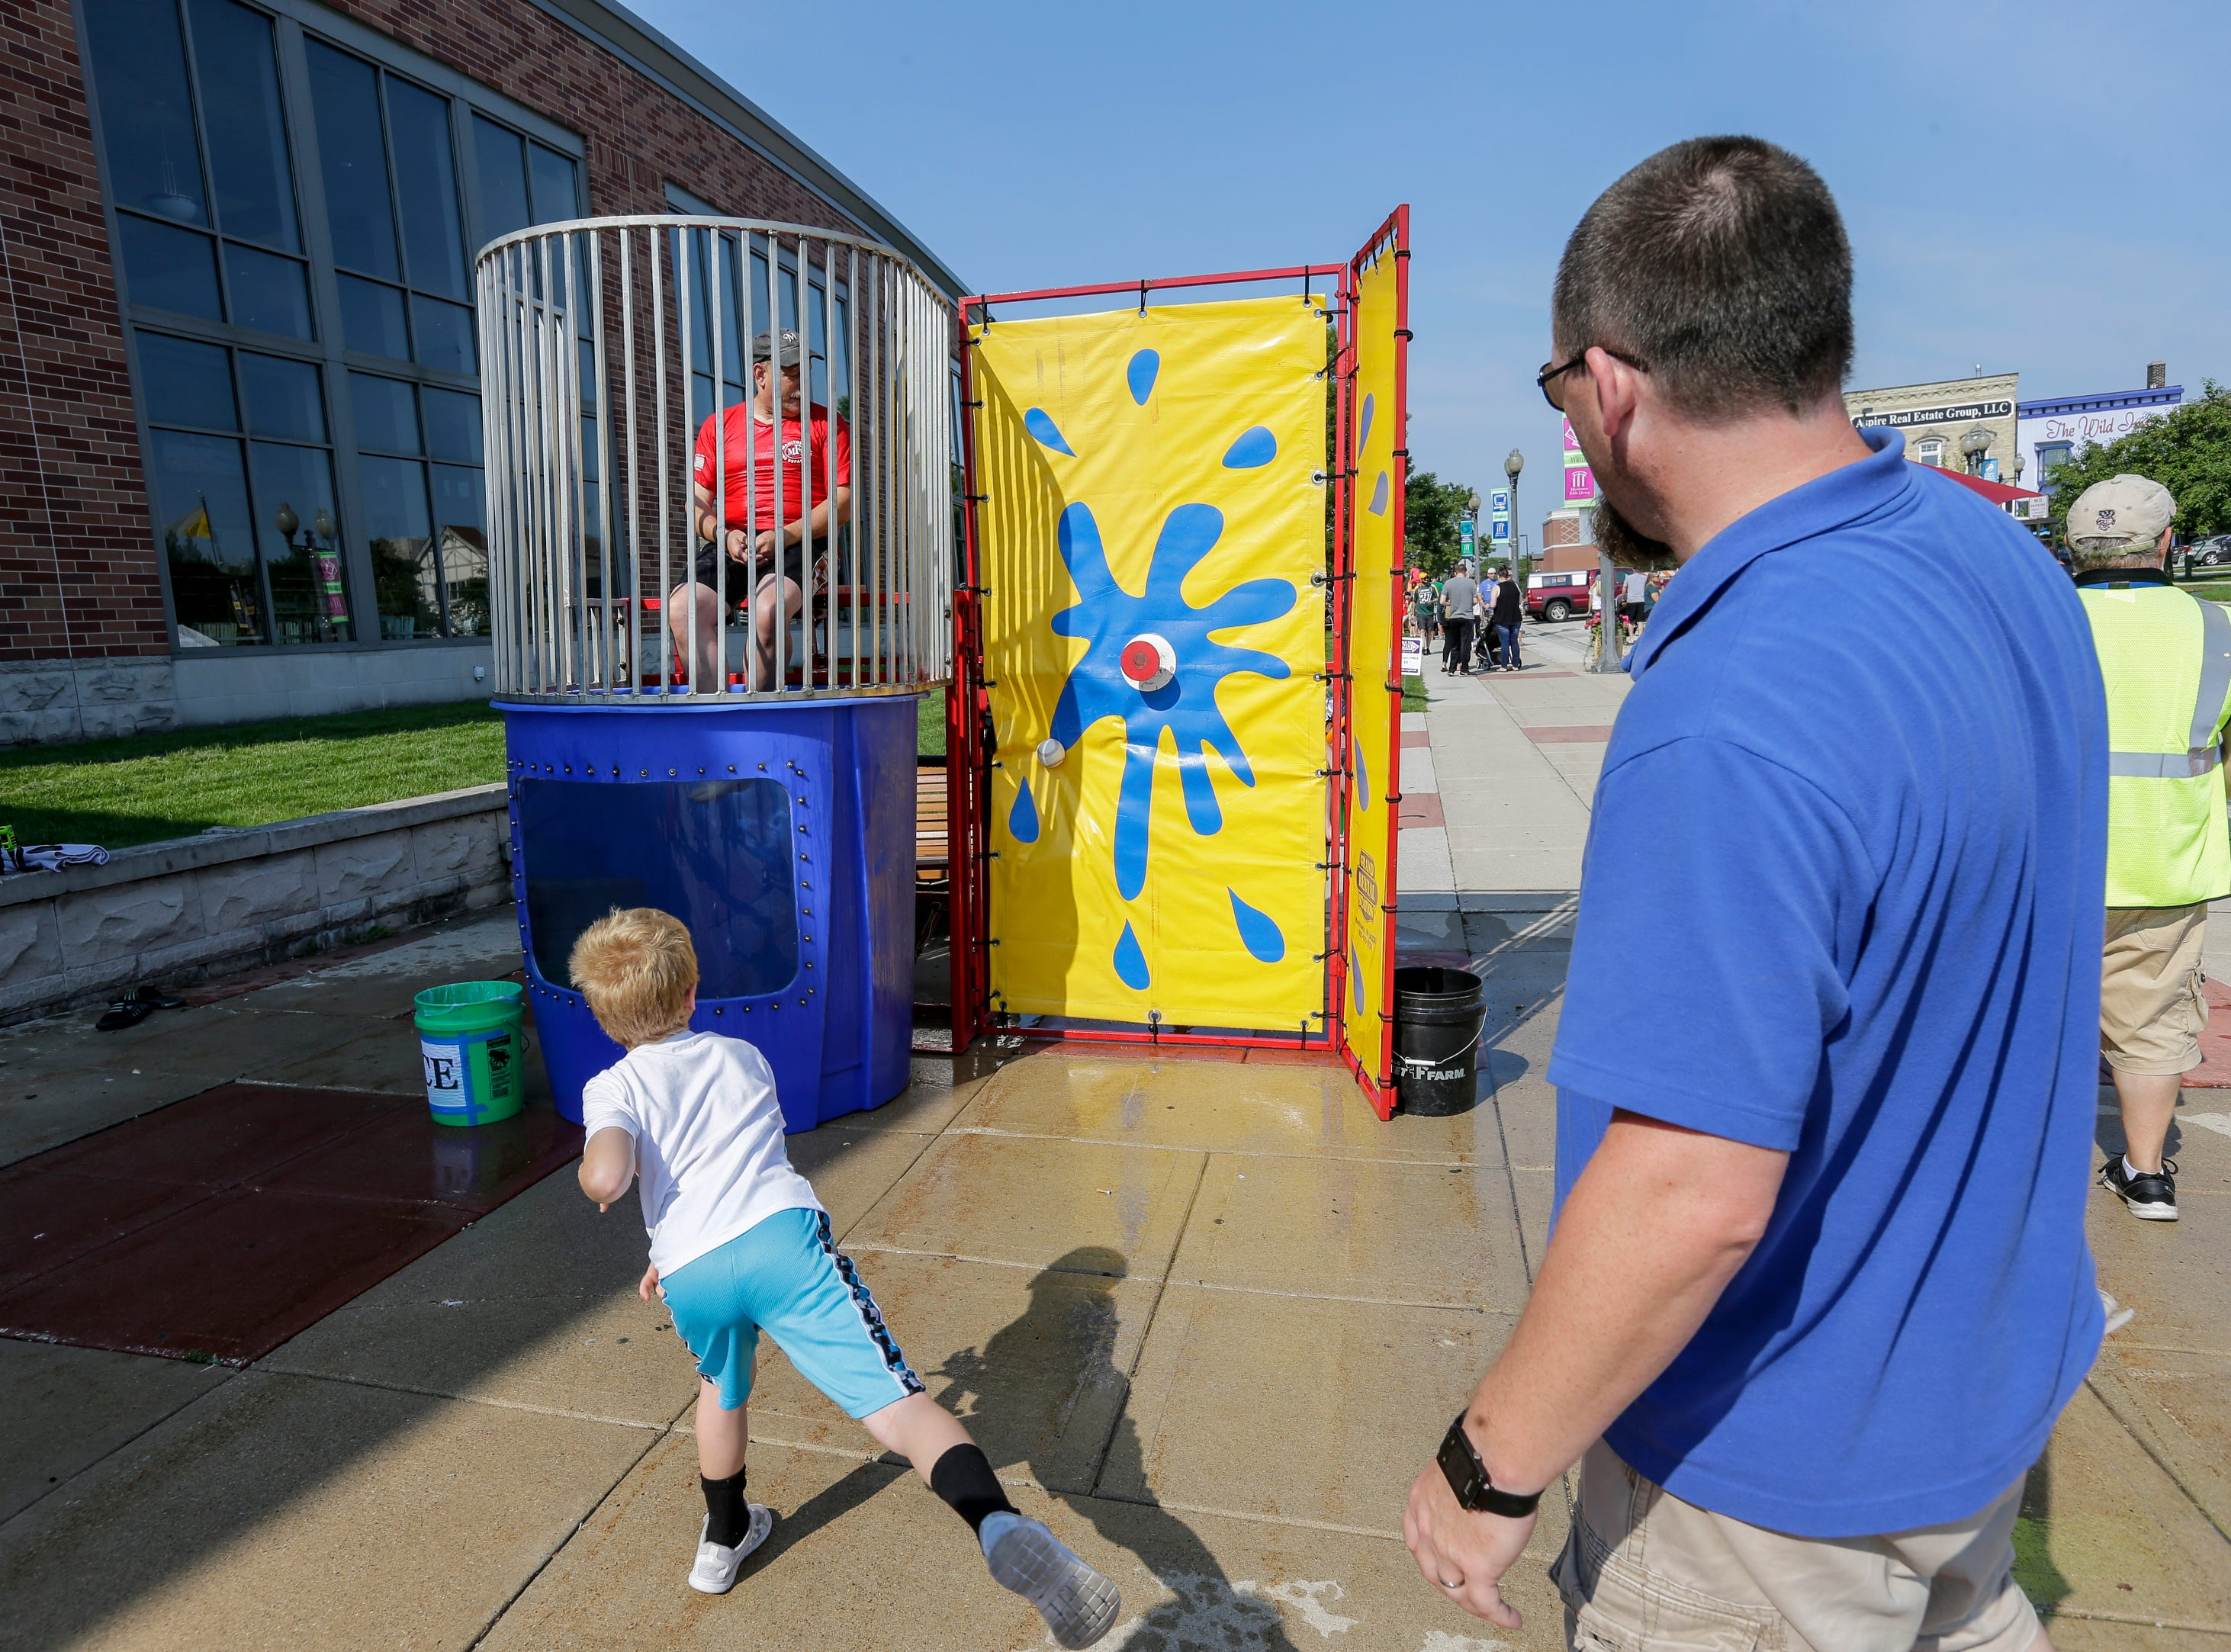 Kids line up for their shot at the dunk tank during the library carnival Saturday, August 4, 2018, in Manitowoc, Wis. Josh Clark/USA TODAY NETWORK-Wisconsin